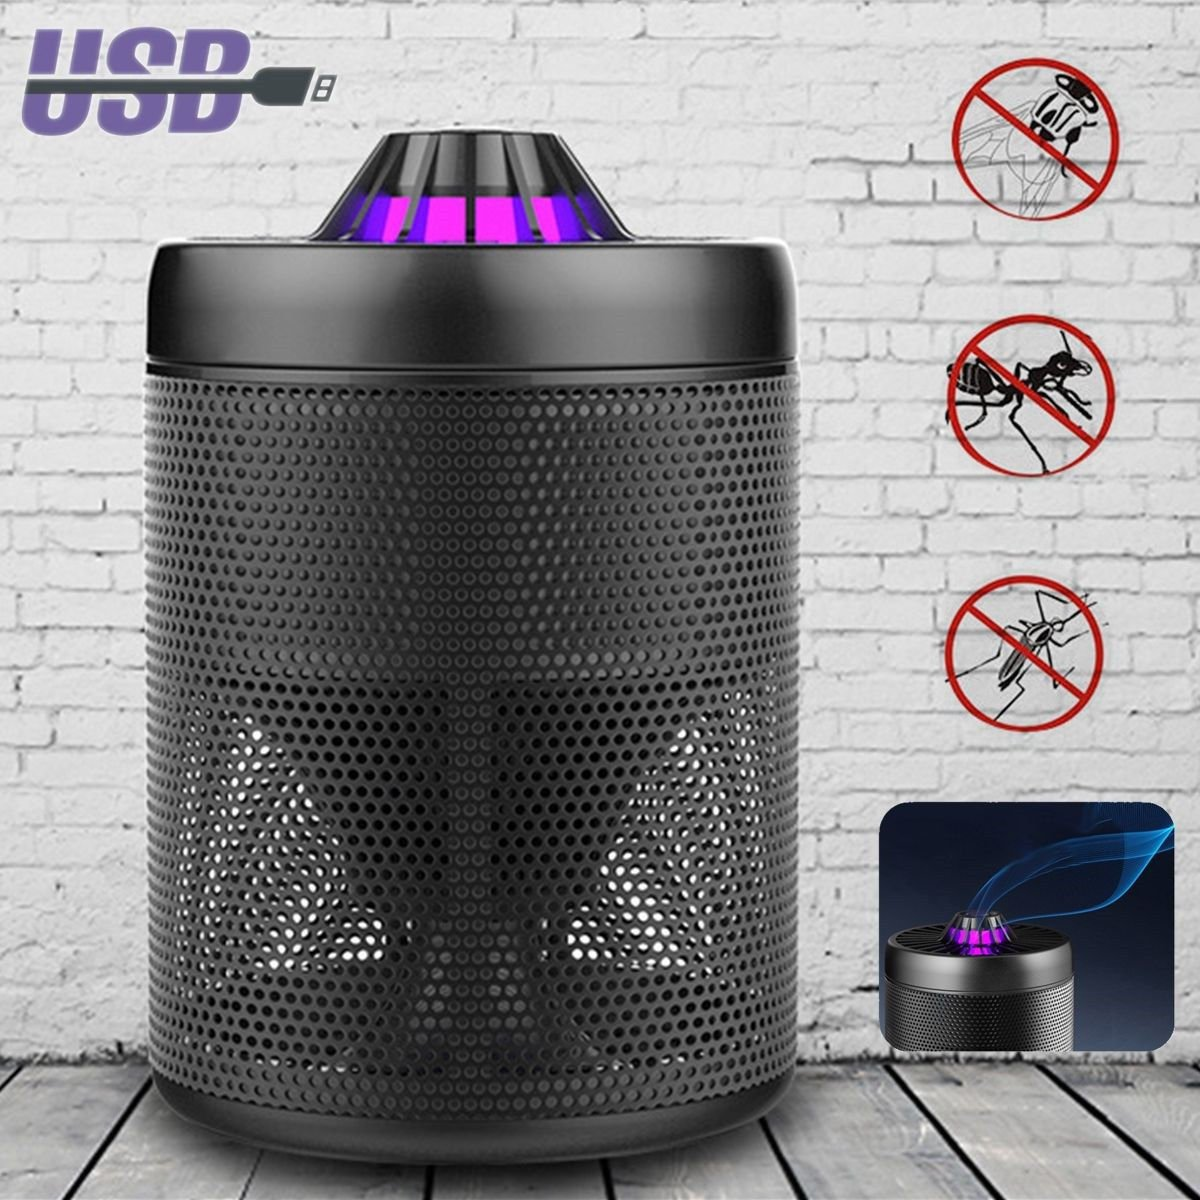 Ultrasonic Insect Killer Electricalequipmentcircuit Circuit Mosquito Zapper Led Lightled Light Bulb With Usb Uv Catch Trap